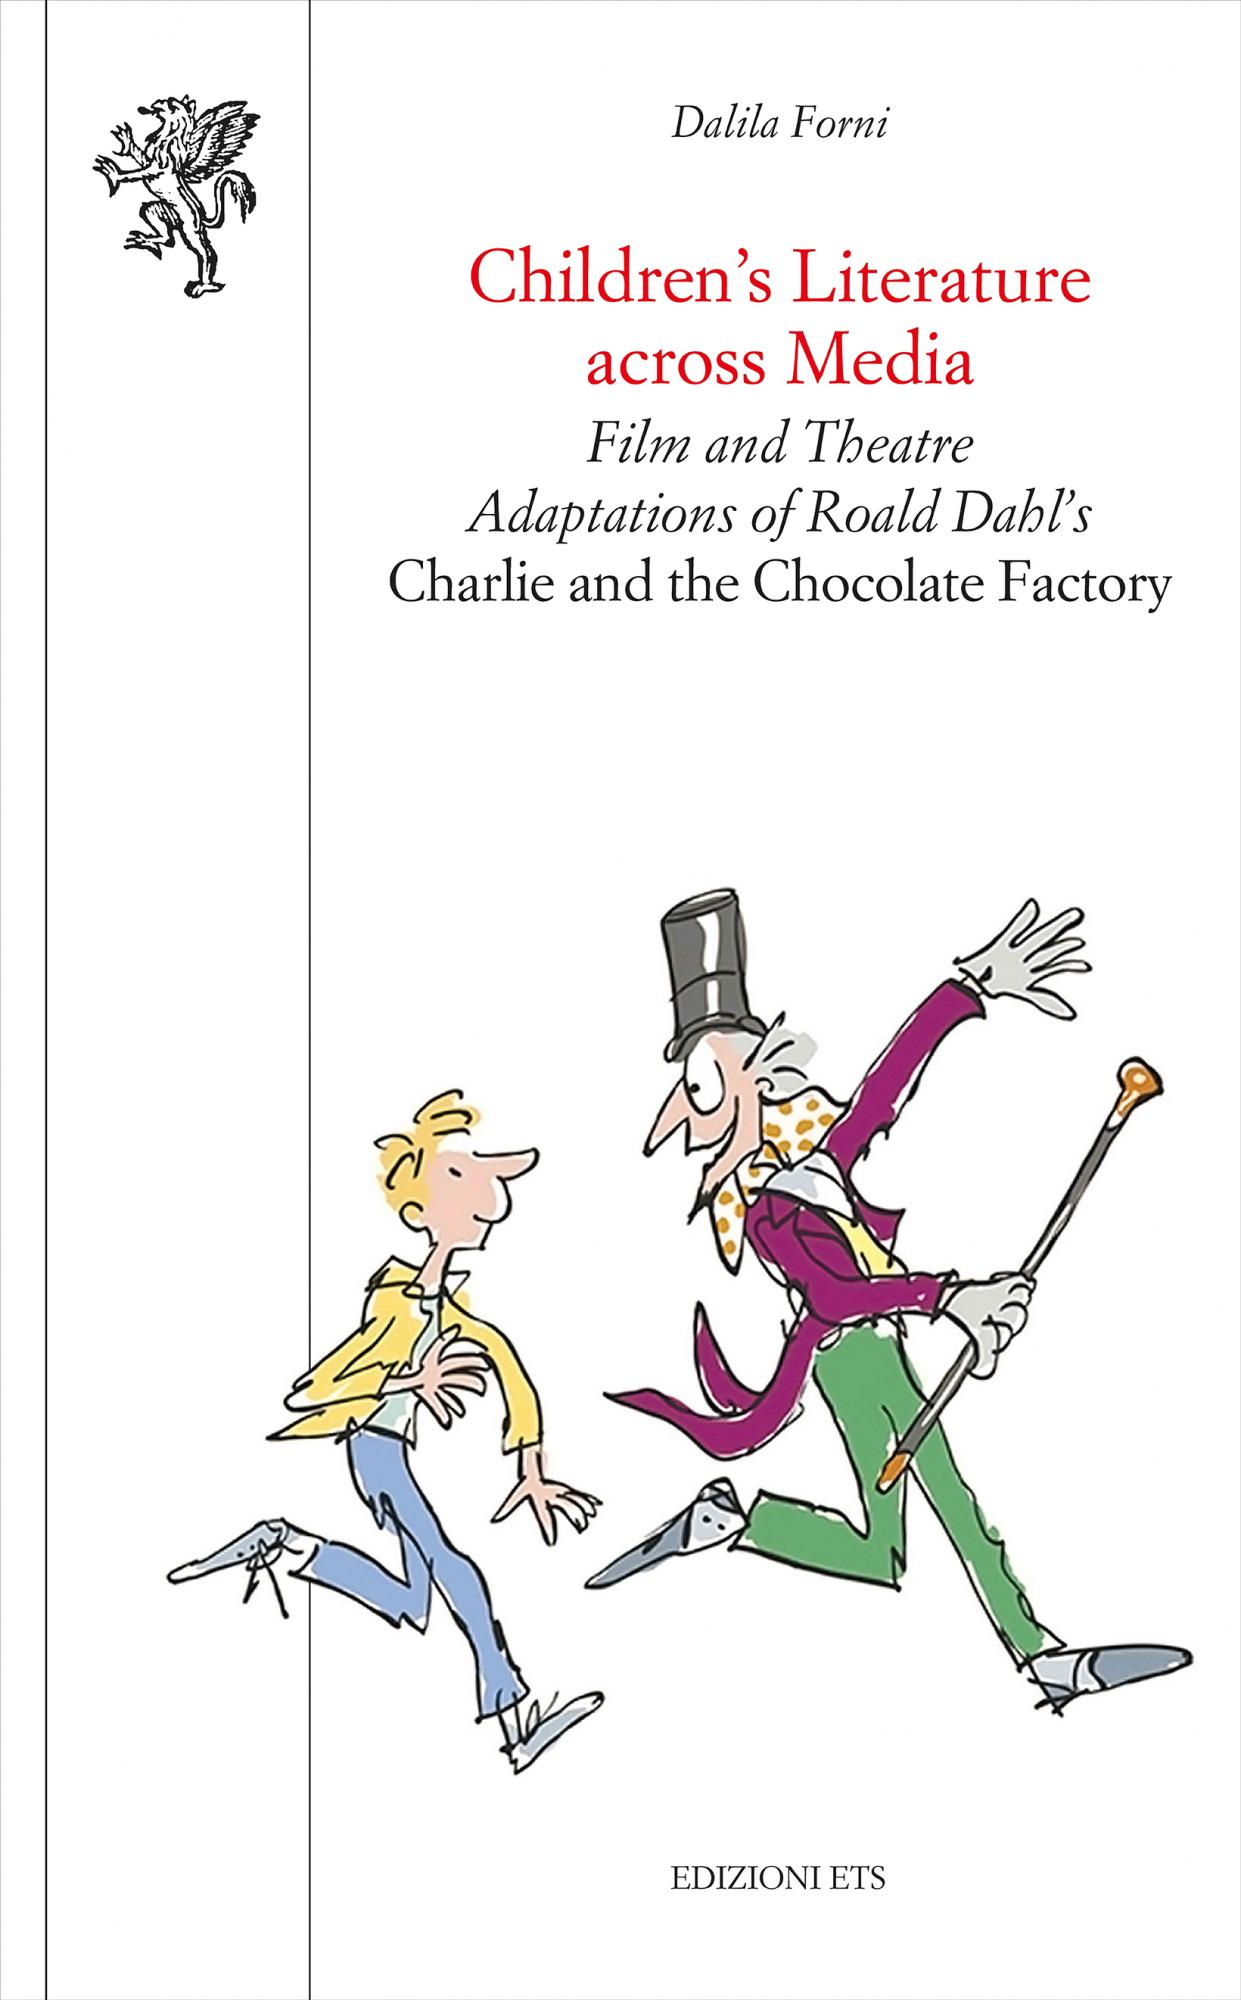 Children's Literature across Media.Film and Theatre  Adaptations of Roald Dahl's Charlie and the Chocolate Factory